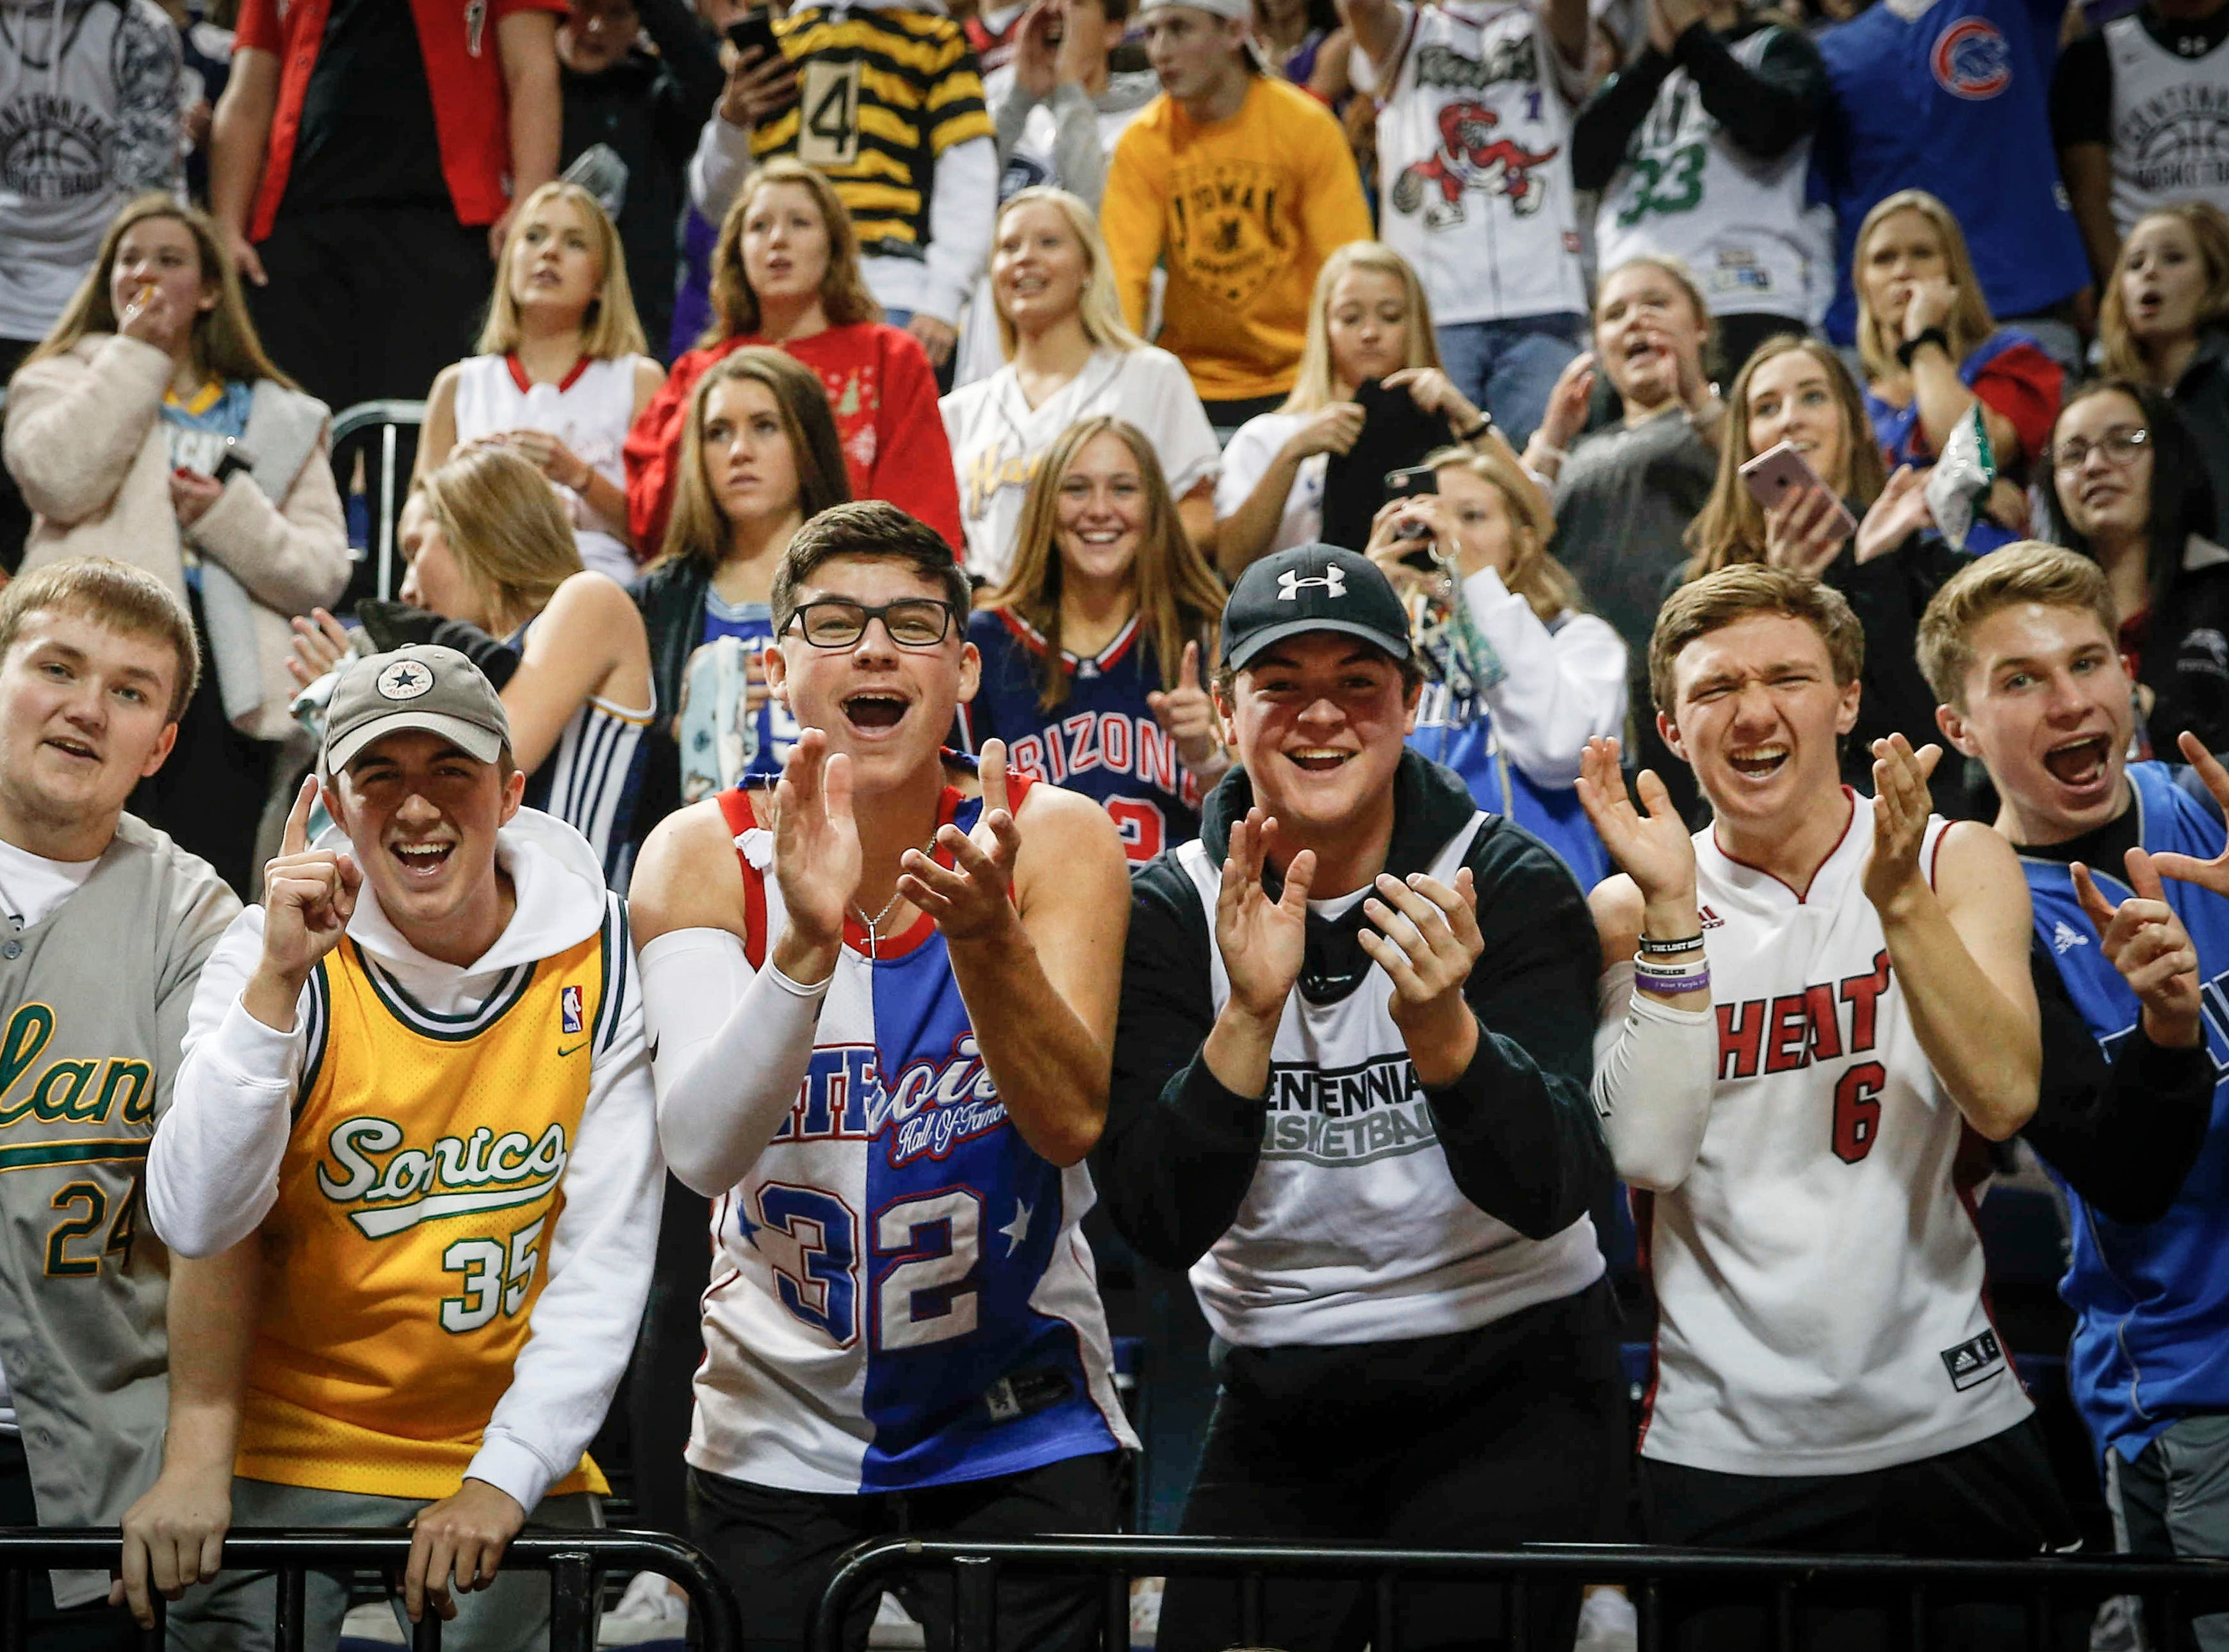 Ankeny Centennial student fans celebrate after the Jaguars volleyball team won a straight set Class 5A state title against Cedar Falls on Friday, Nov. 9, 2018, in Cedar Rapids.